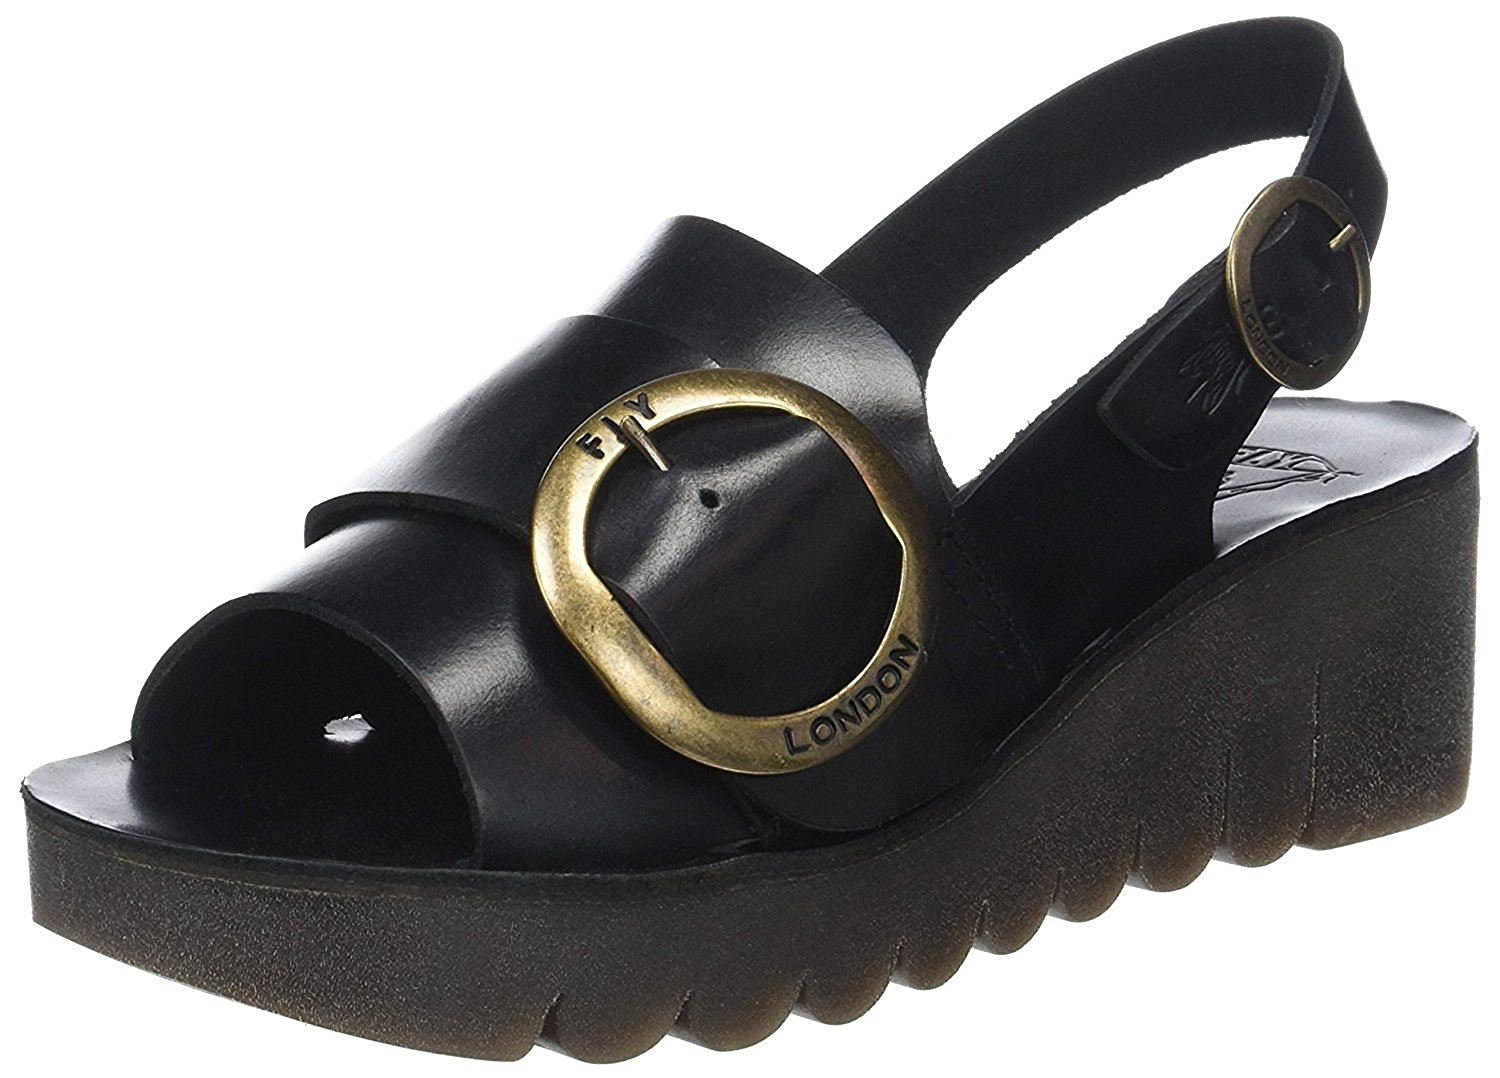 c2e4c67b2fa2 Get Quotations ·  Fly London Yidi190fly Black Leather Womens Wedge Sandals  Shoes